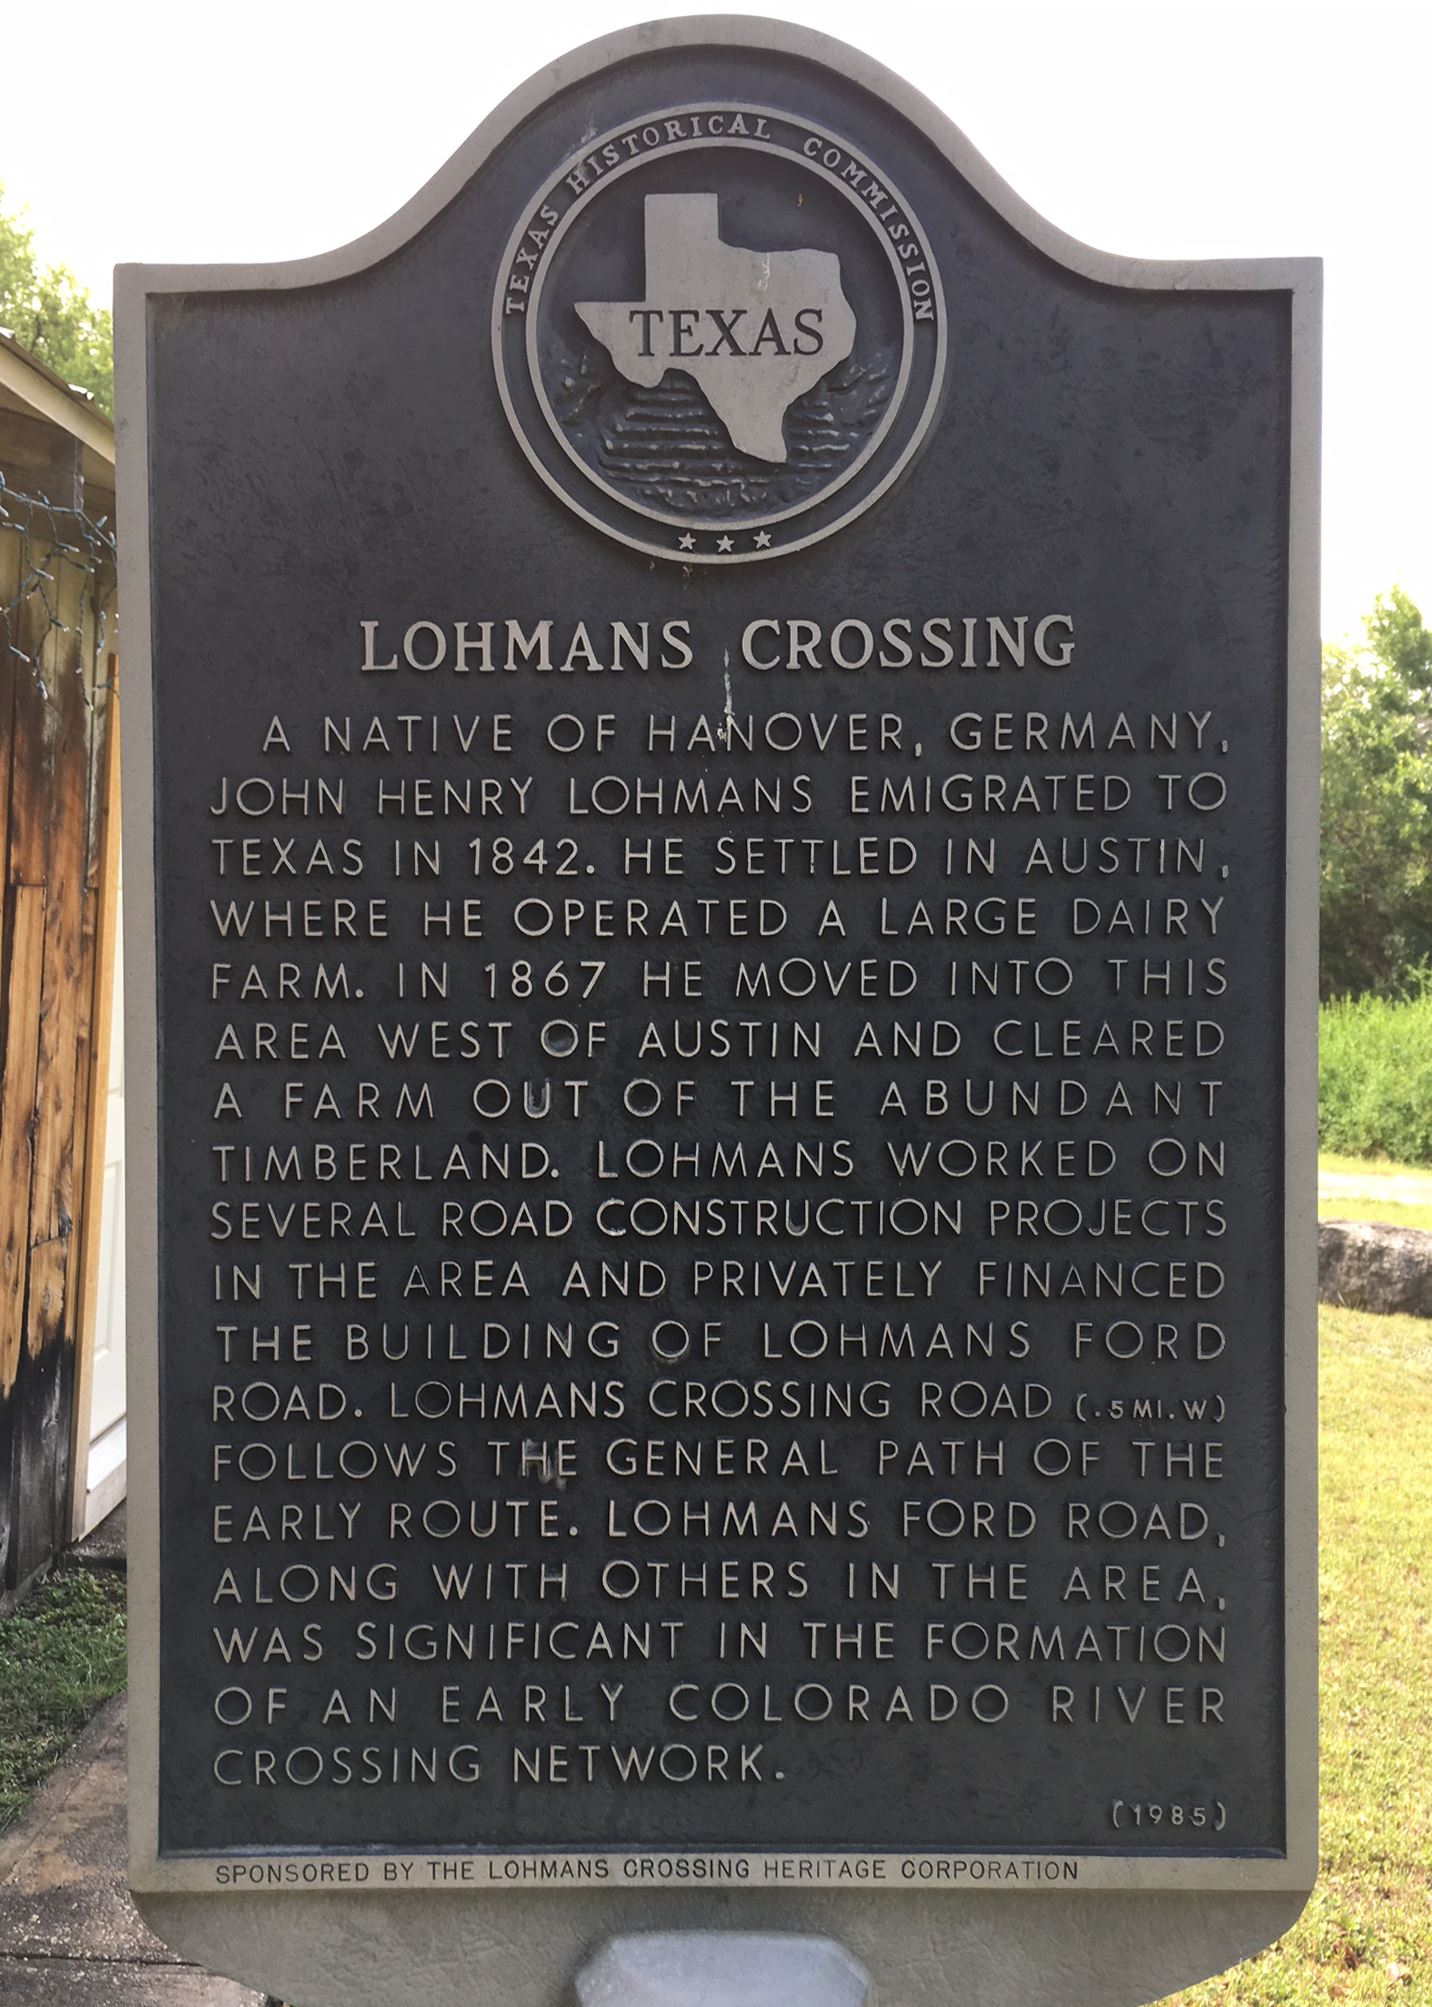 Lohmans Crossing state historical marker